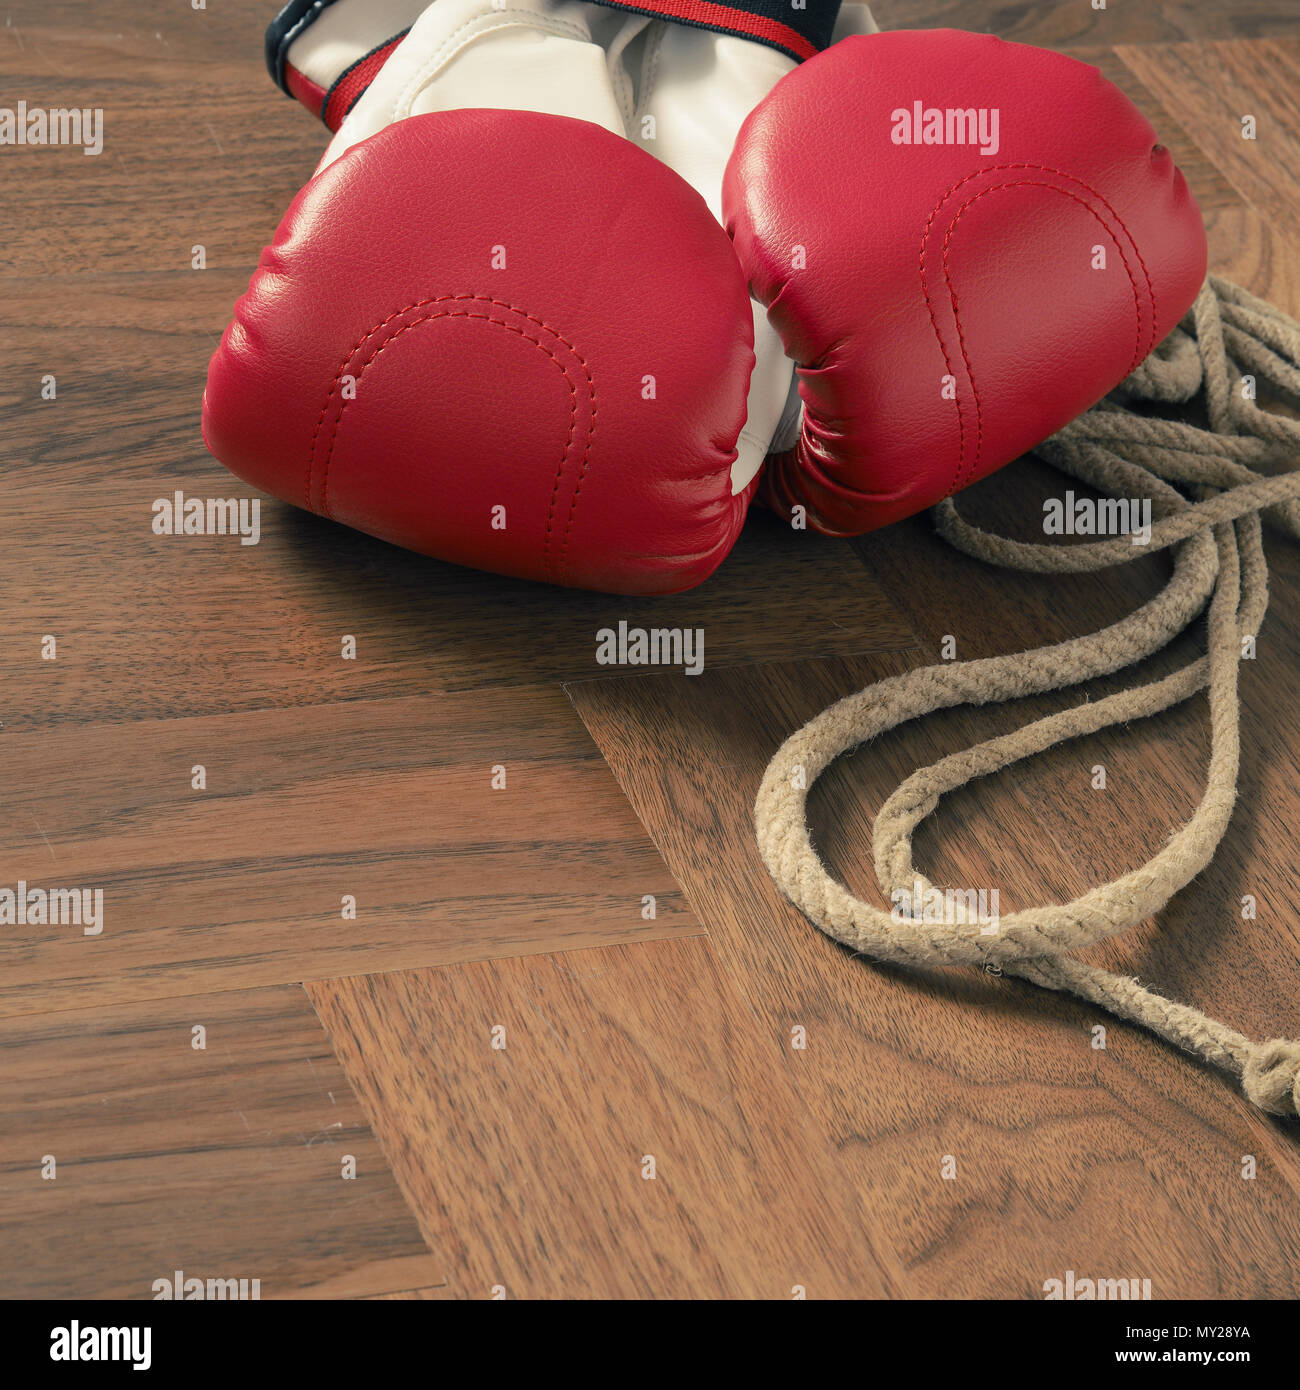 Red boxing gloves and skipping rope on a rustic wooden floor in a gym, sports or assertiveness concept - Stock Image